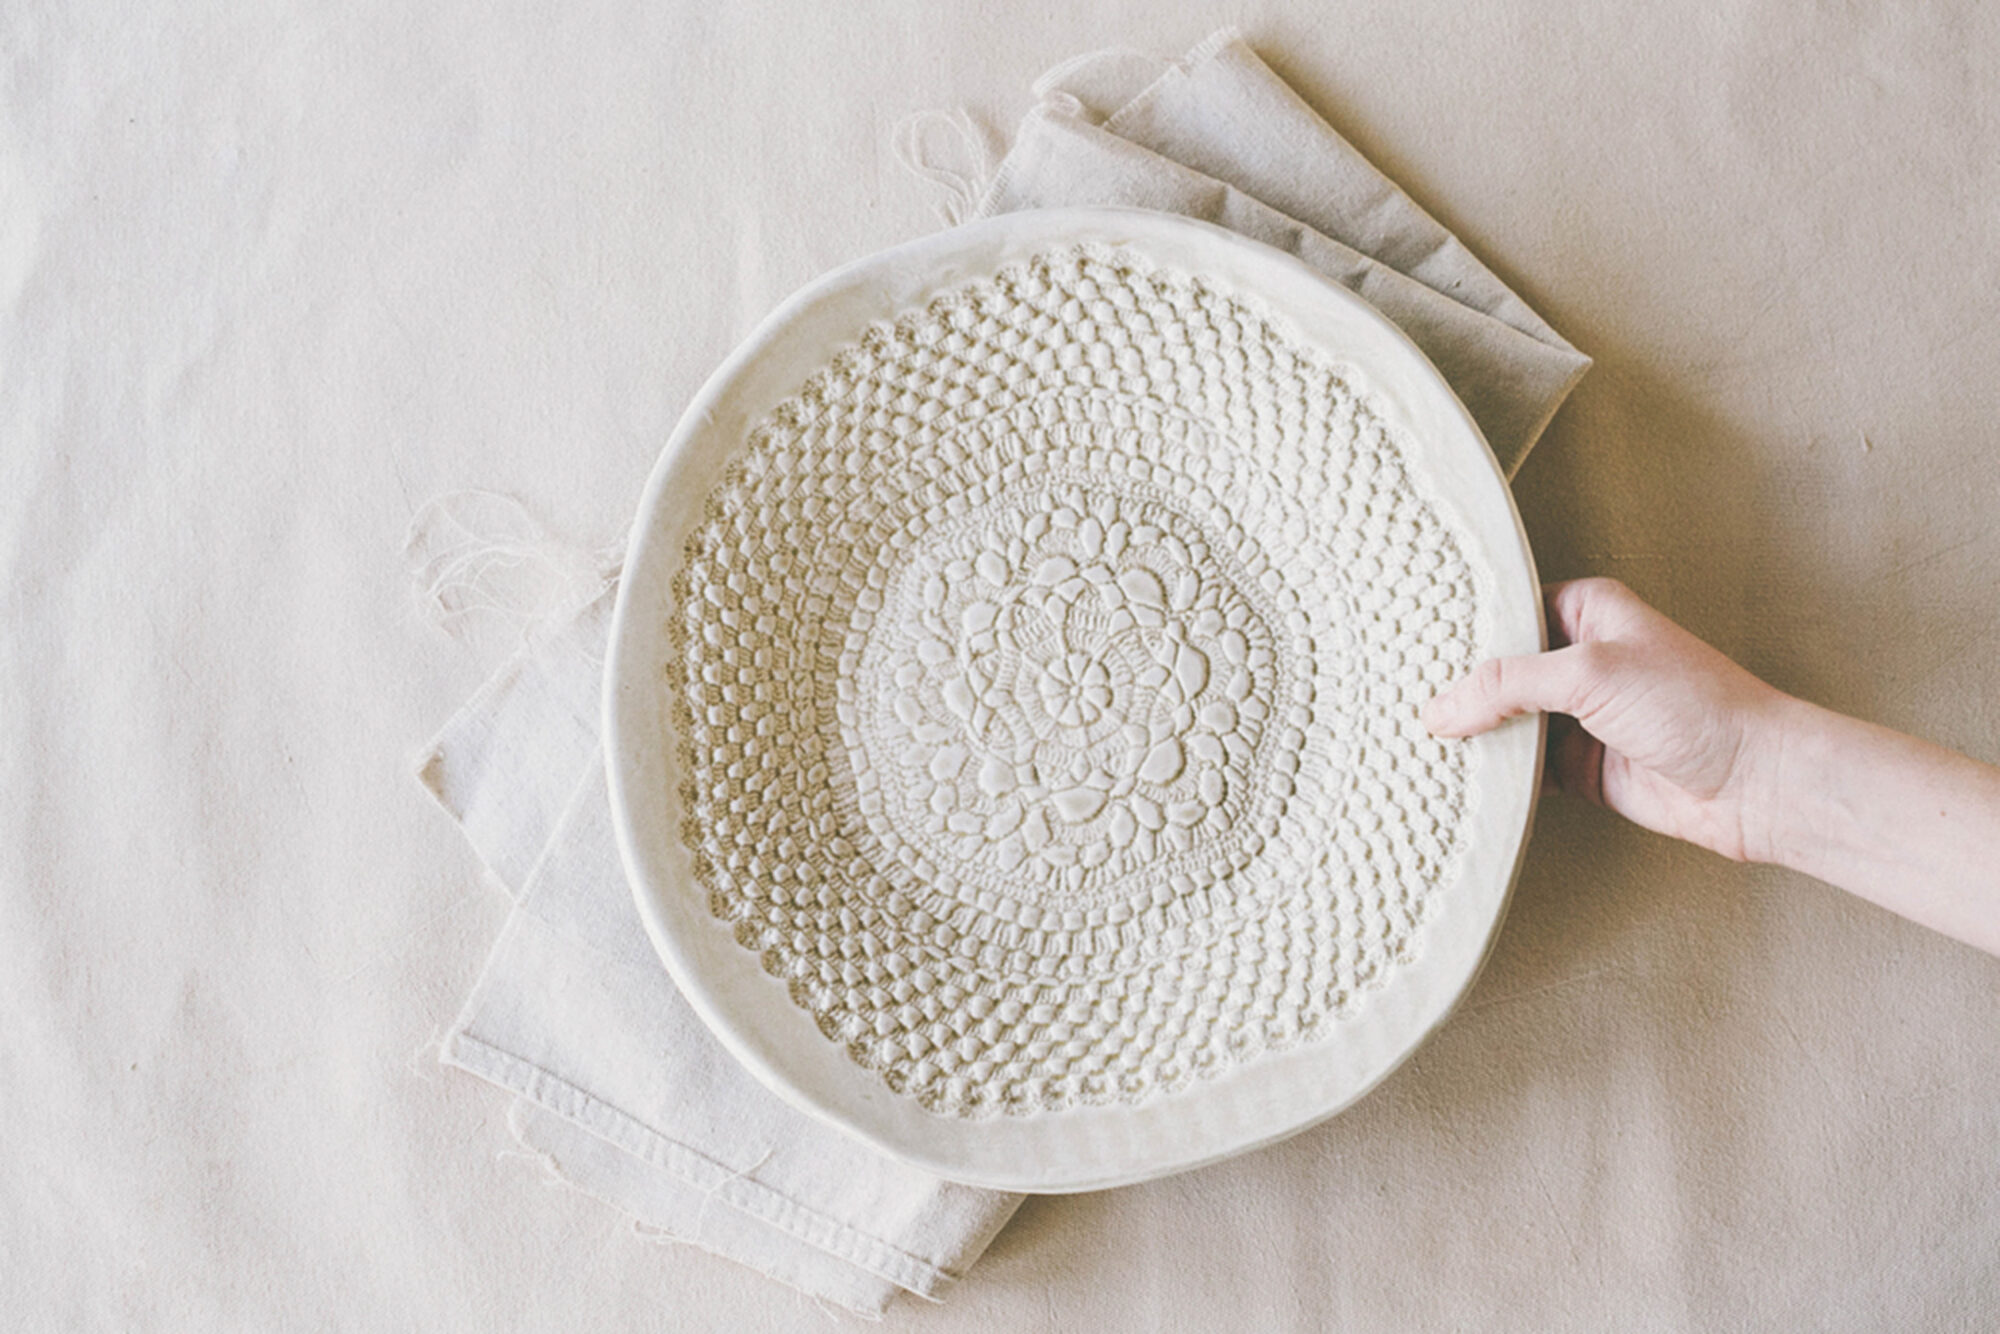 Textured plate with hand